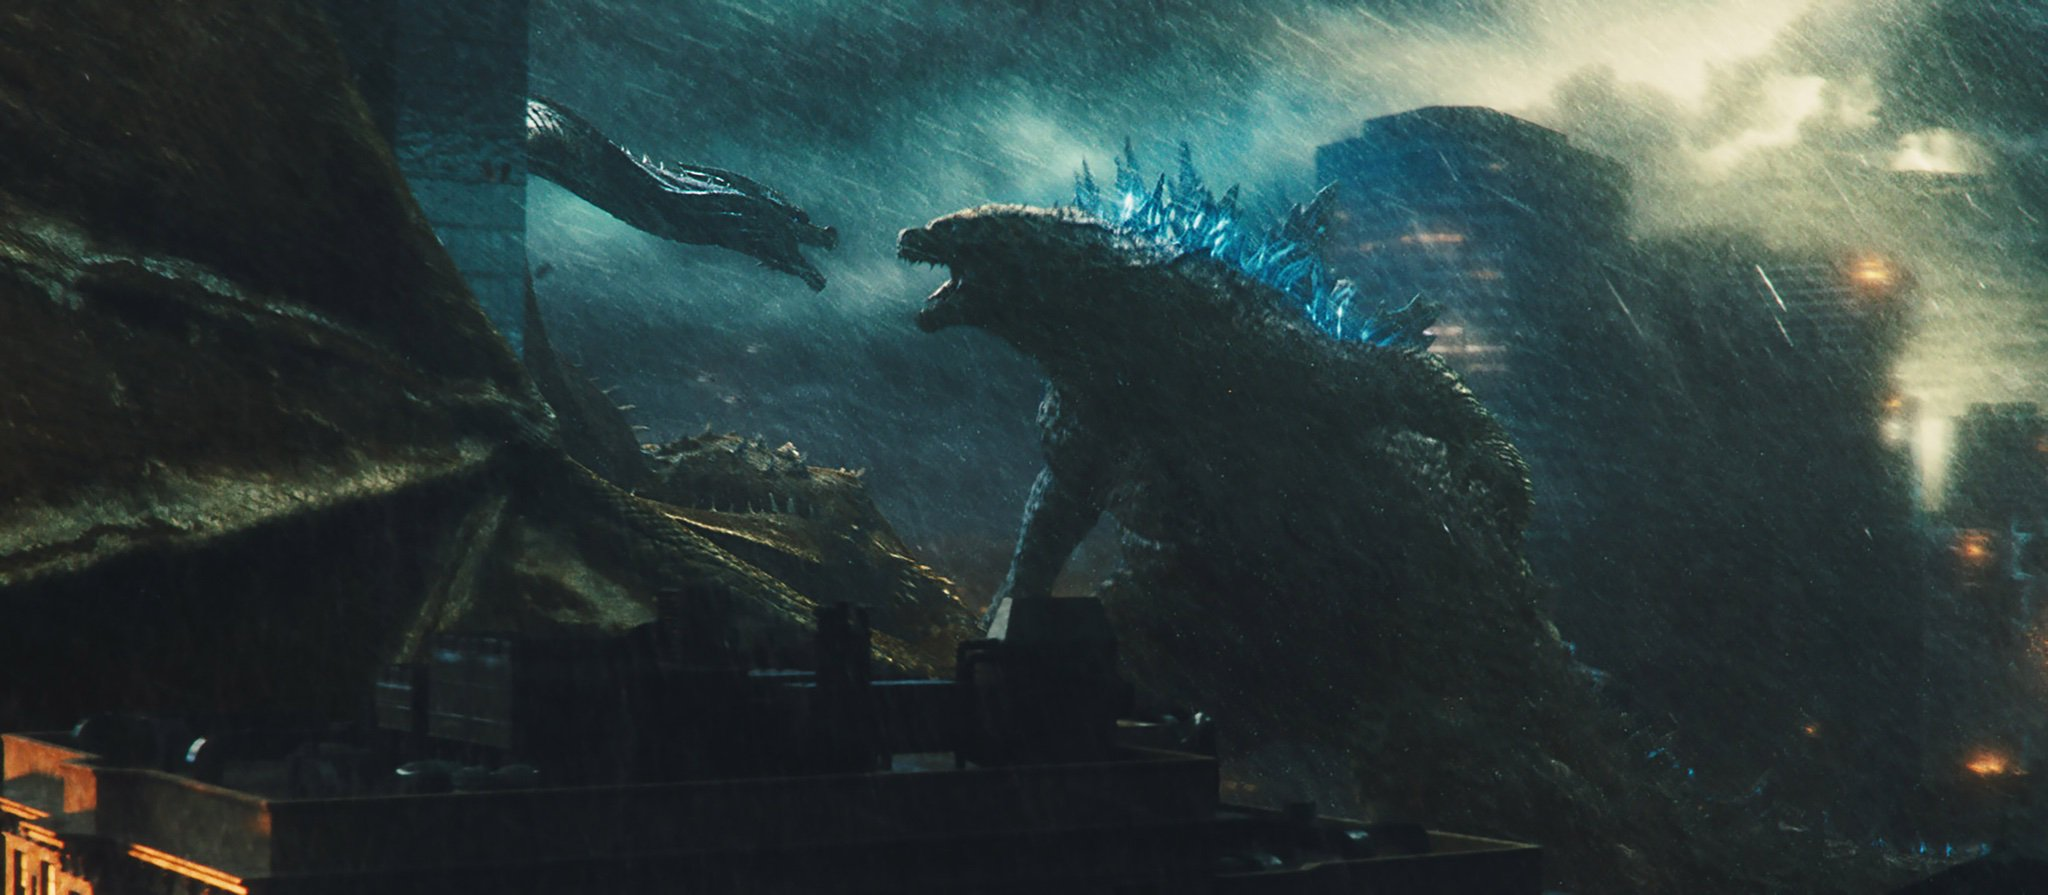 Warner Bros libera tráiler final de Godzilla: King of Monsters de Legendary